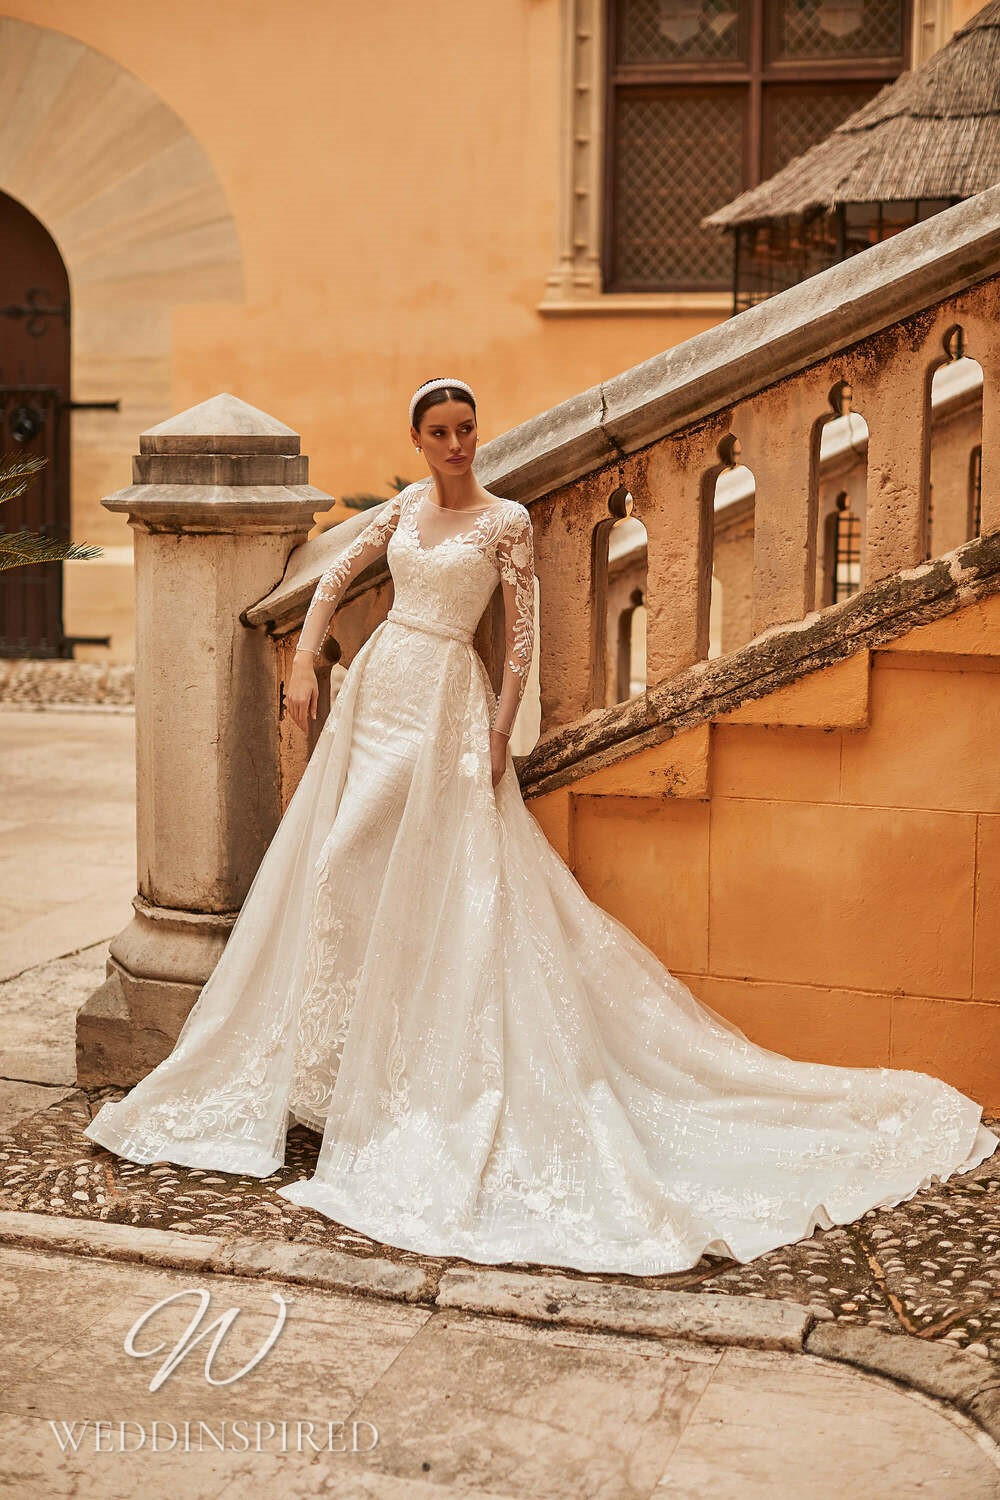 A Royal by Naviblue 2021 lace mermaid wedding dress with long sleeves and a detachable skirt